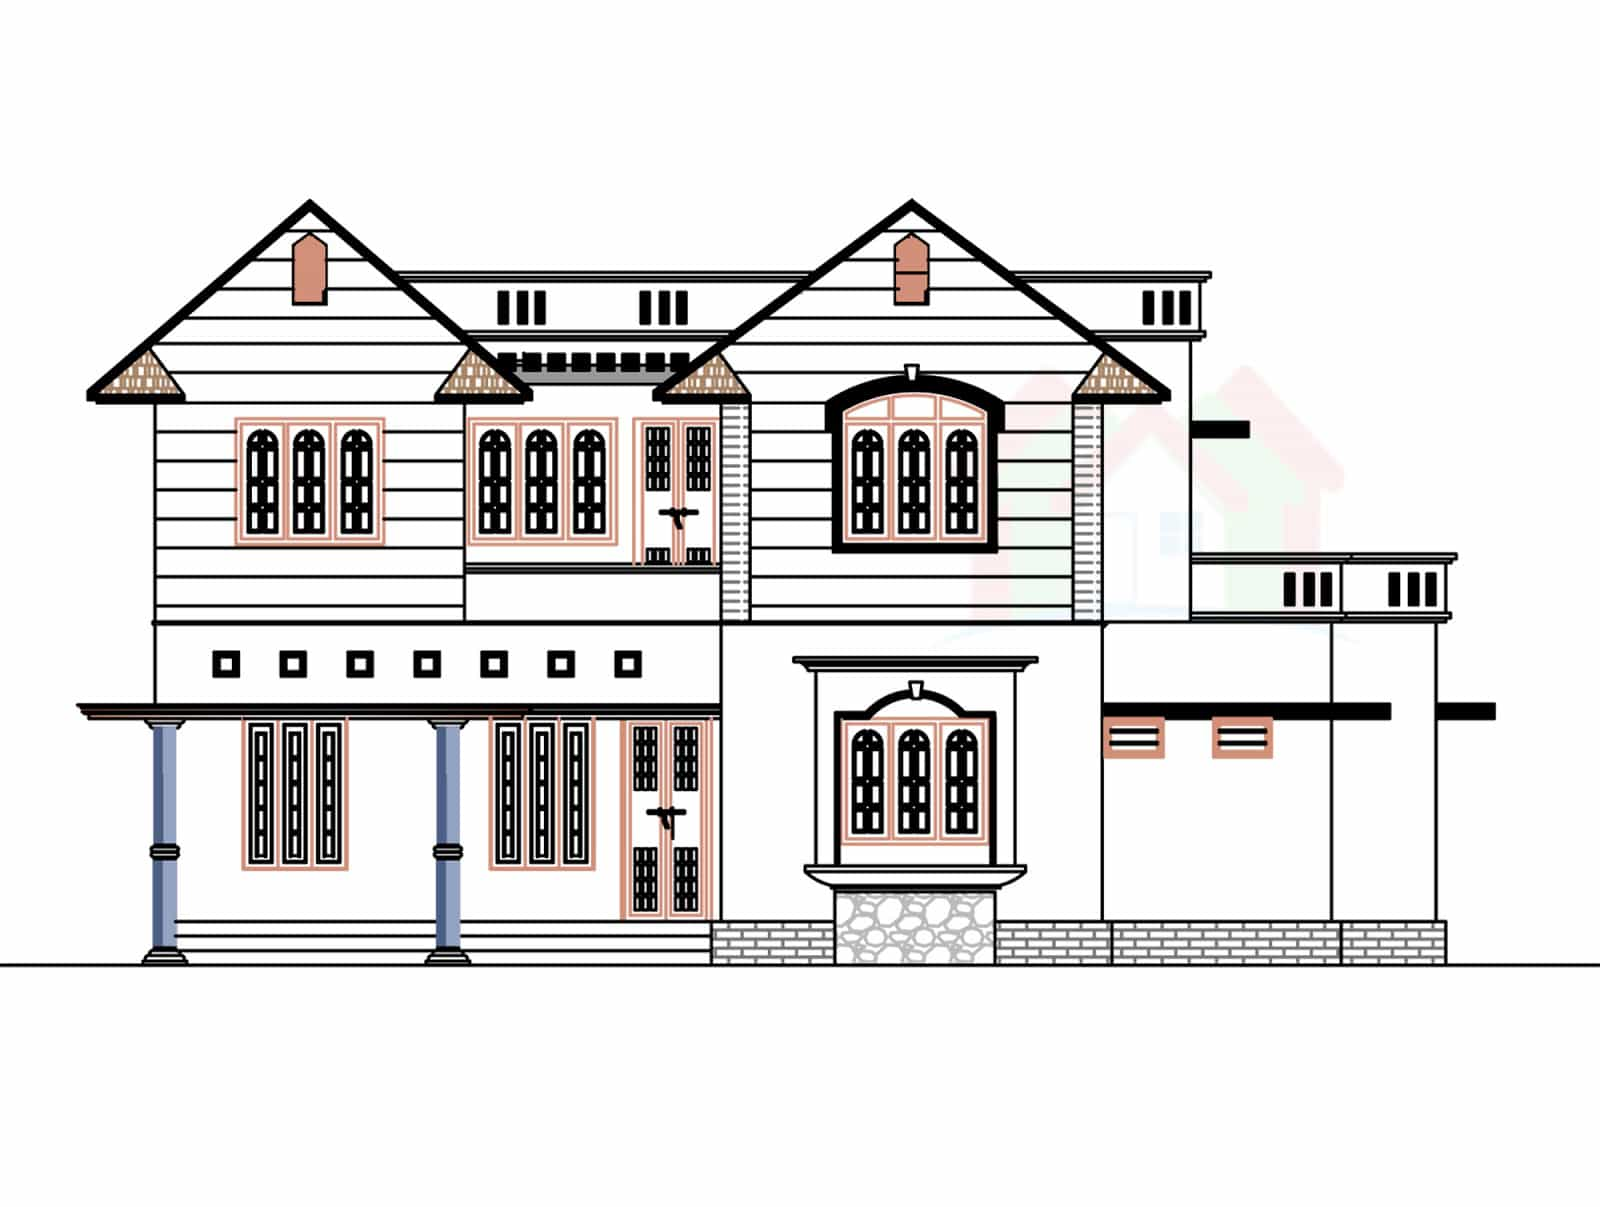 Kerala house plans keralahouseplanner for Front view house plans